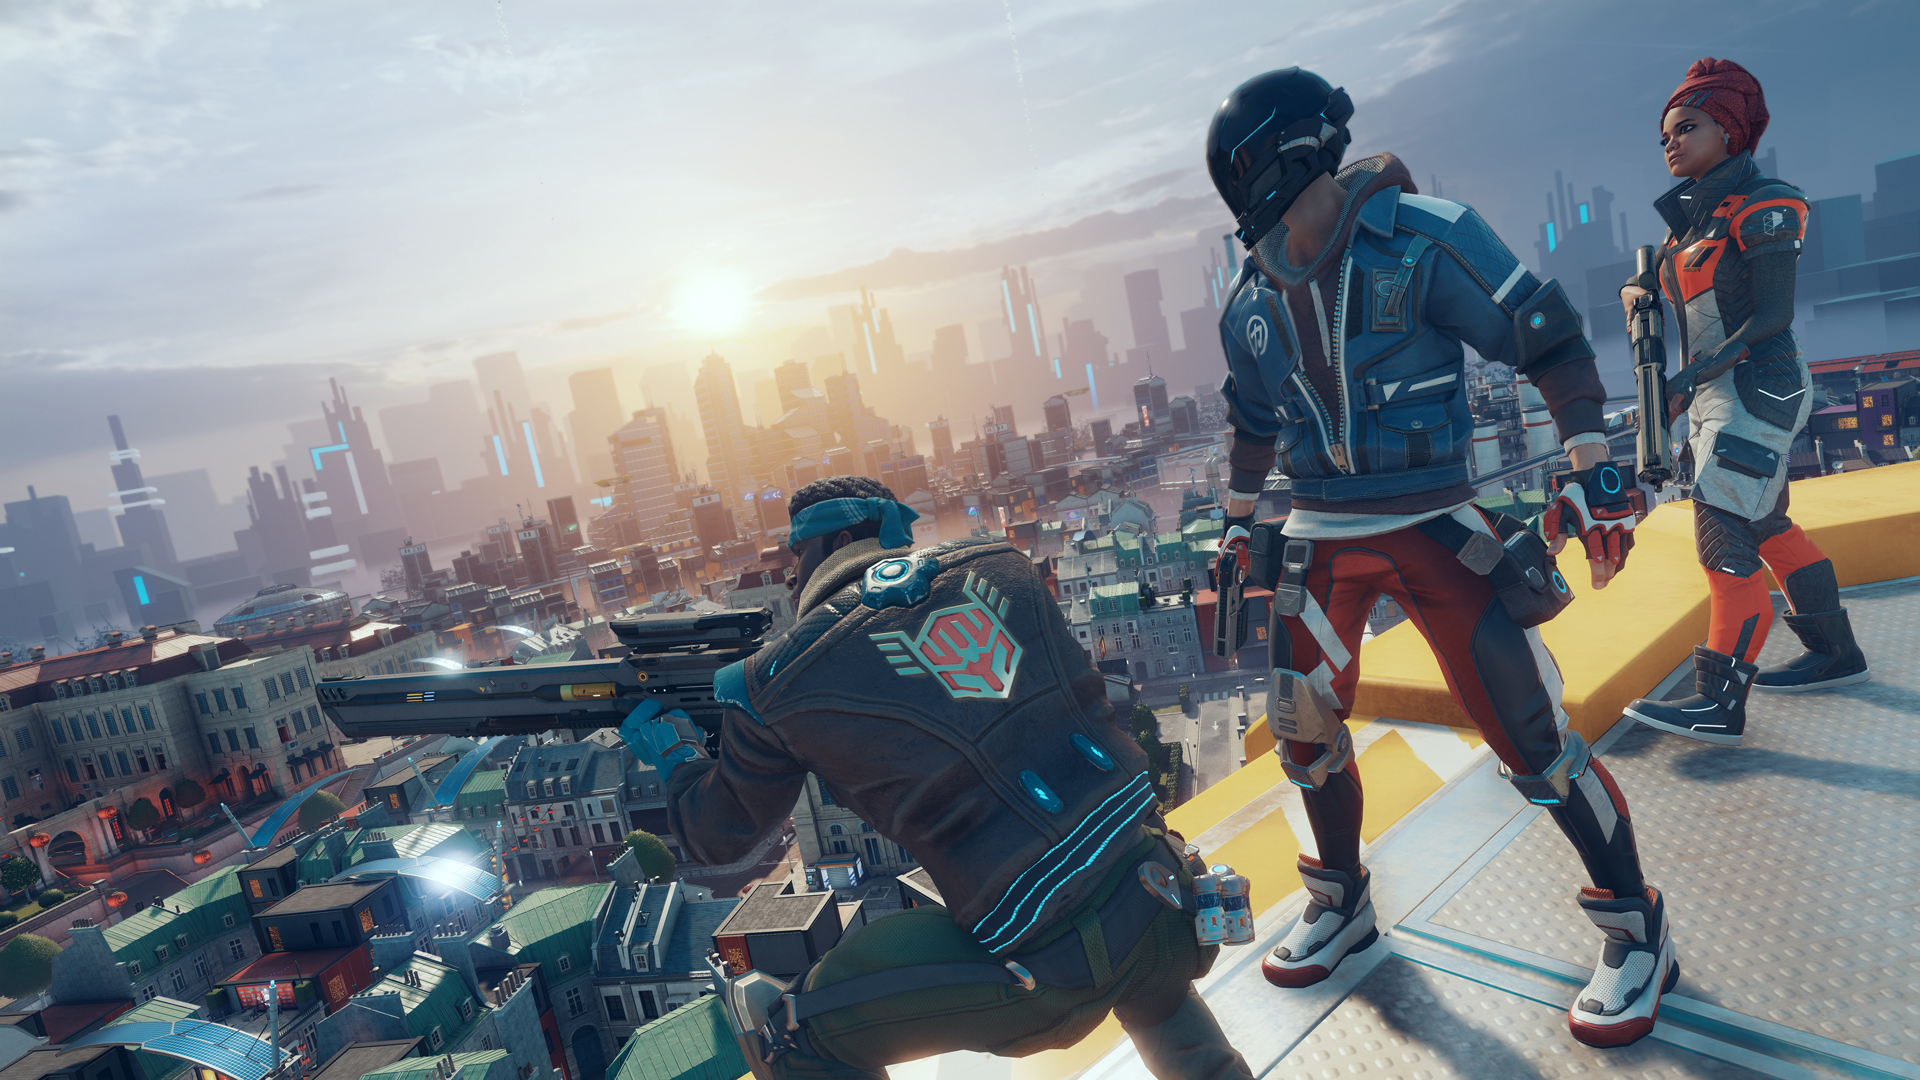 Hands-on with Hyper Scape, Ubisoft's urban battle royale shooter ...